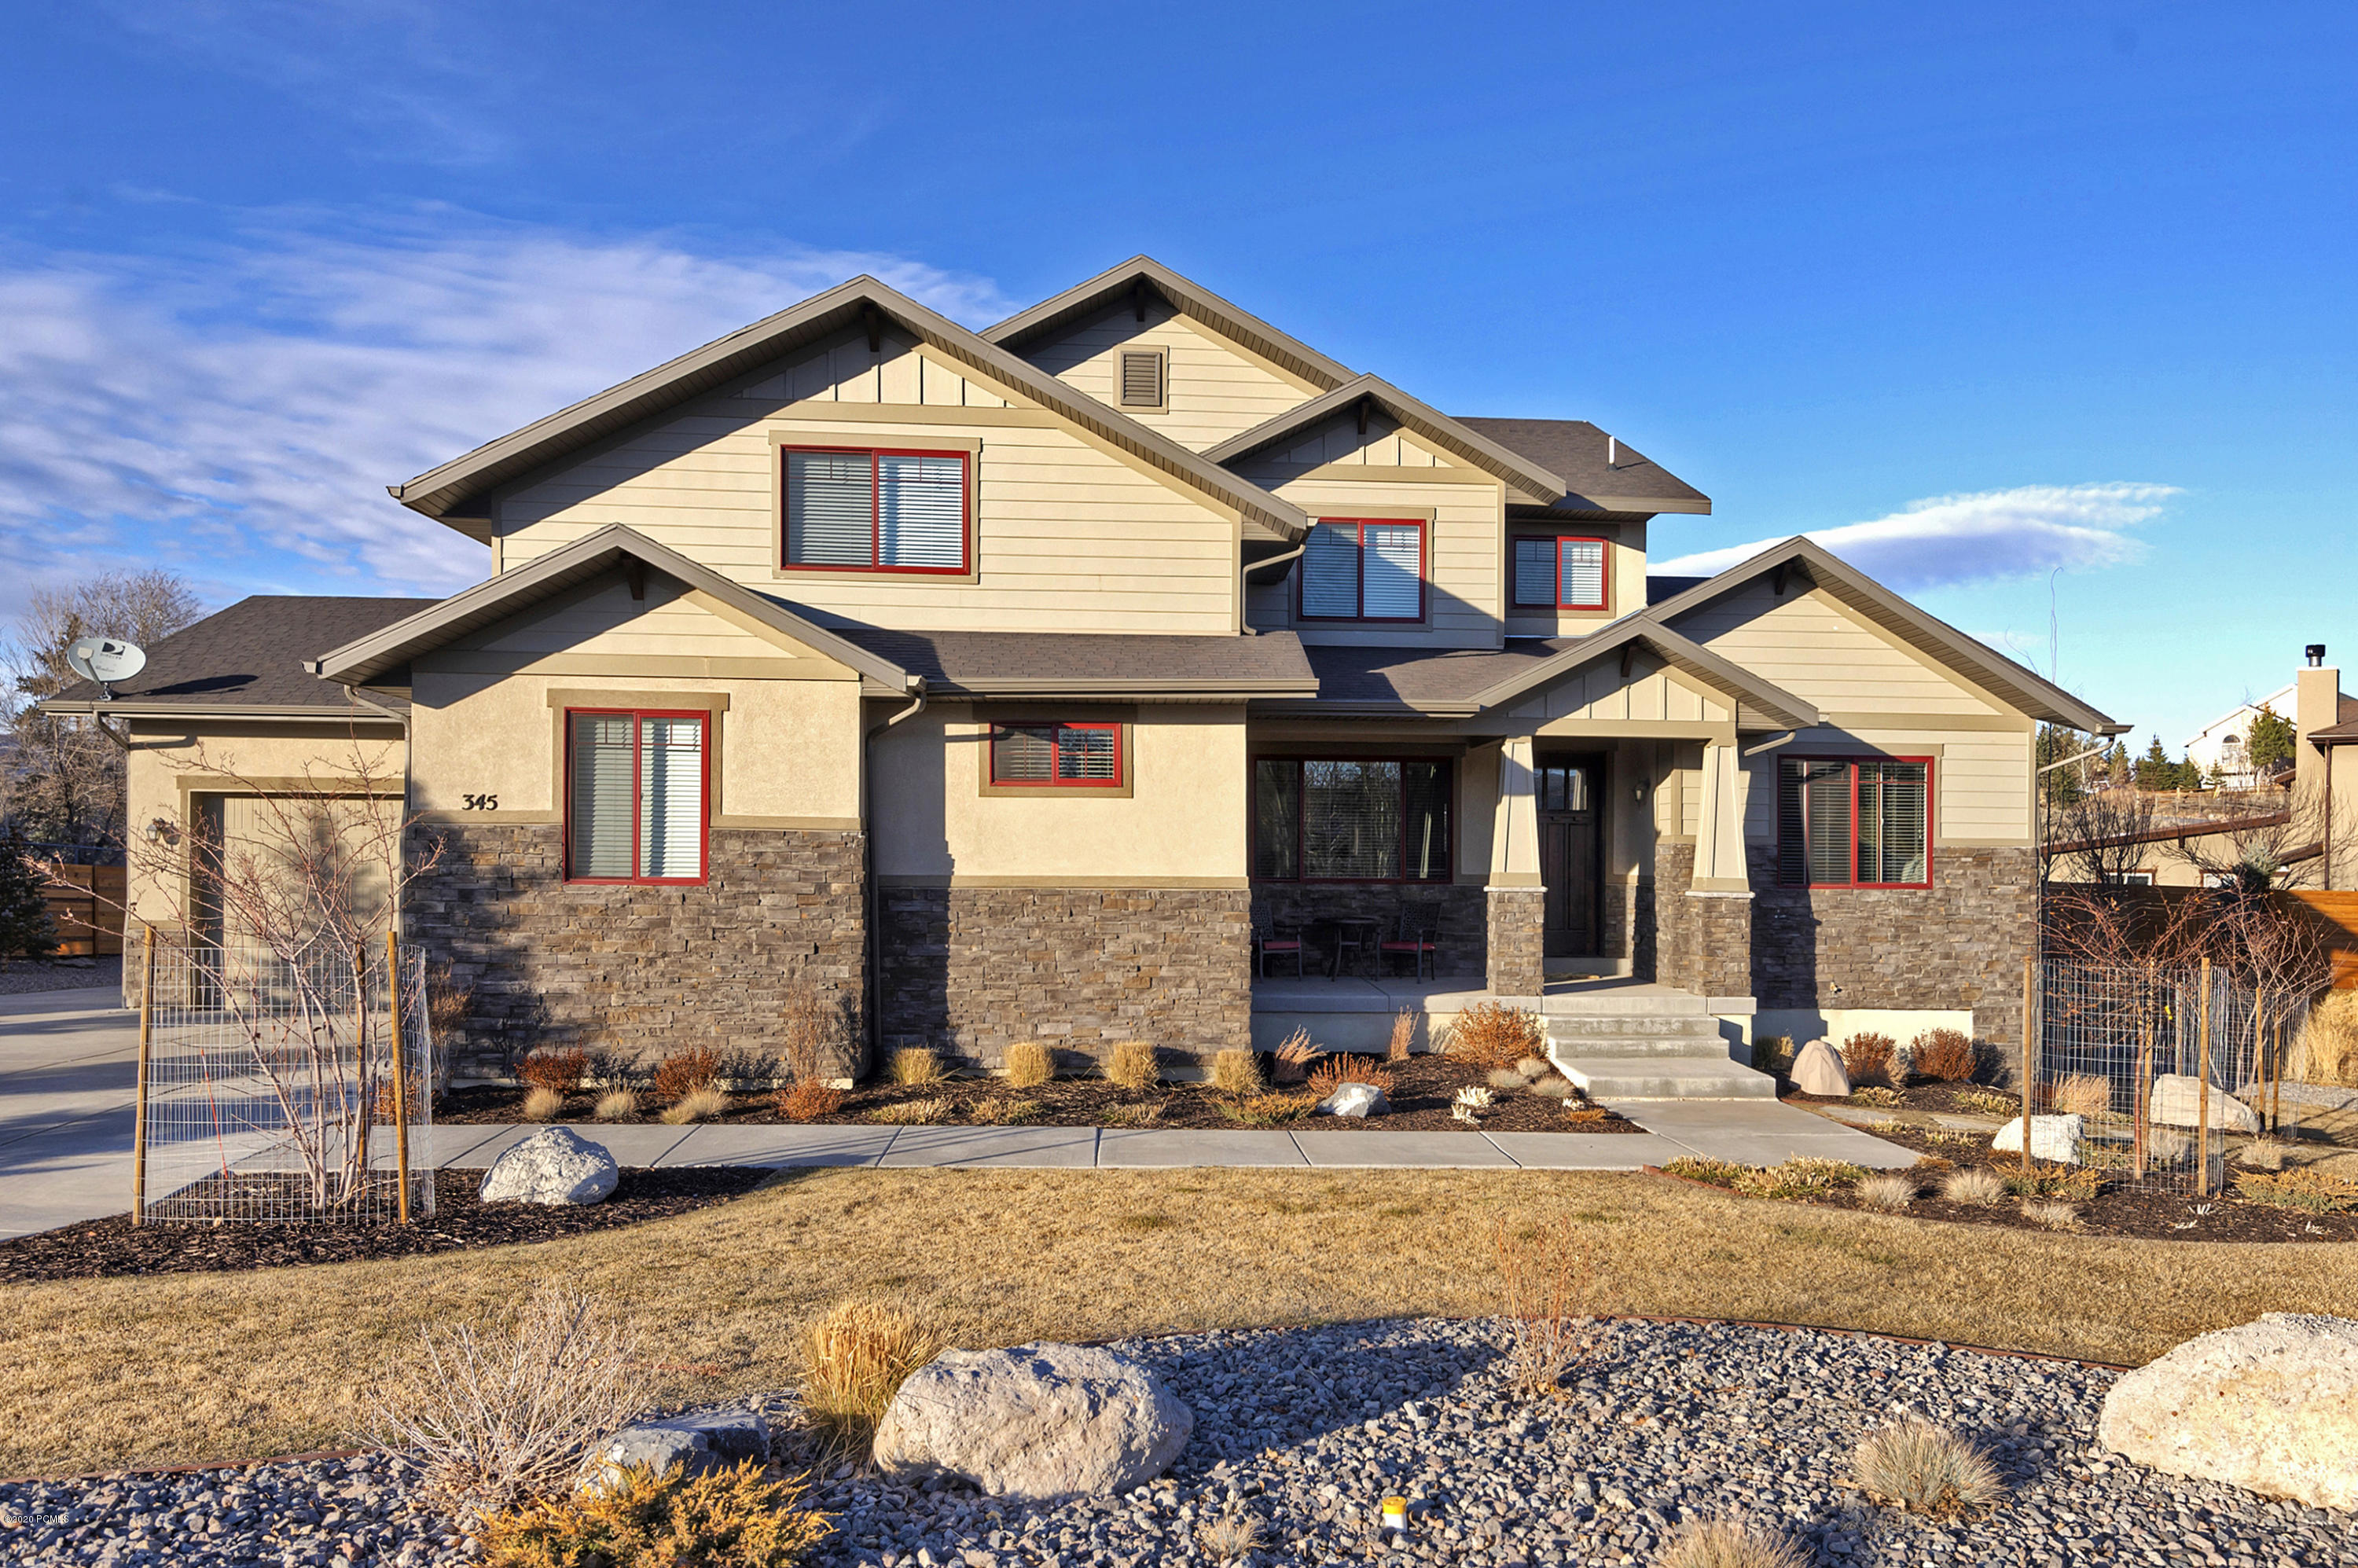 345 Starview Drive, Park City, Utah 84098, 7 Bedrooms Bedrooms, ,5 BathroomsBathrooms,Single Family,For Sale,Starview,12004590